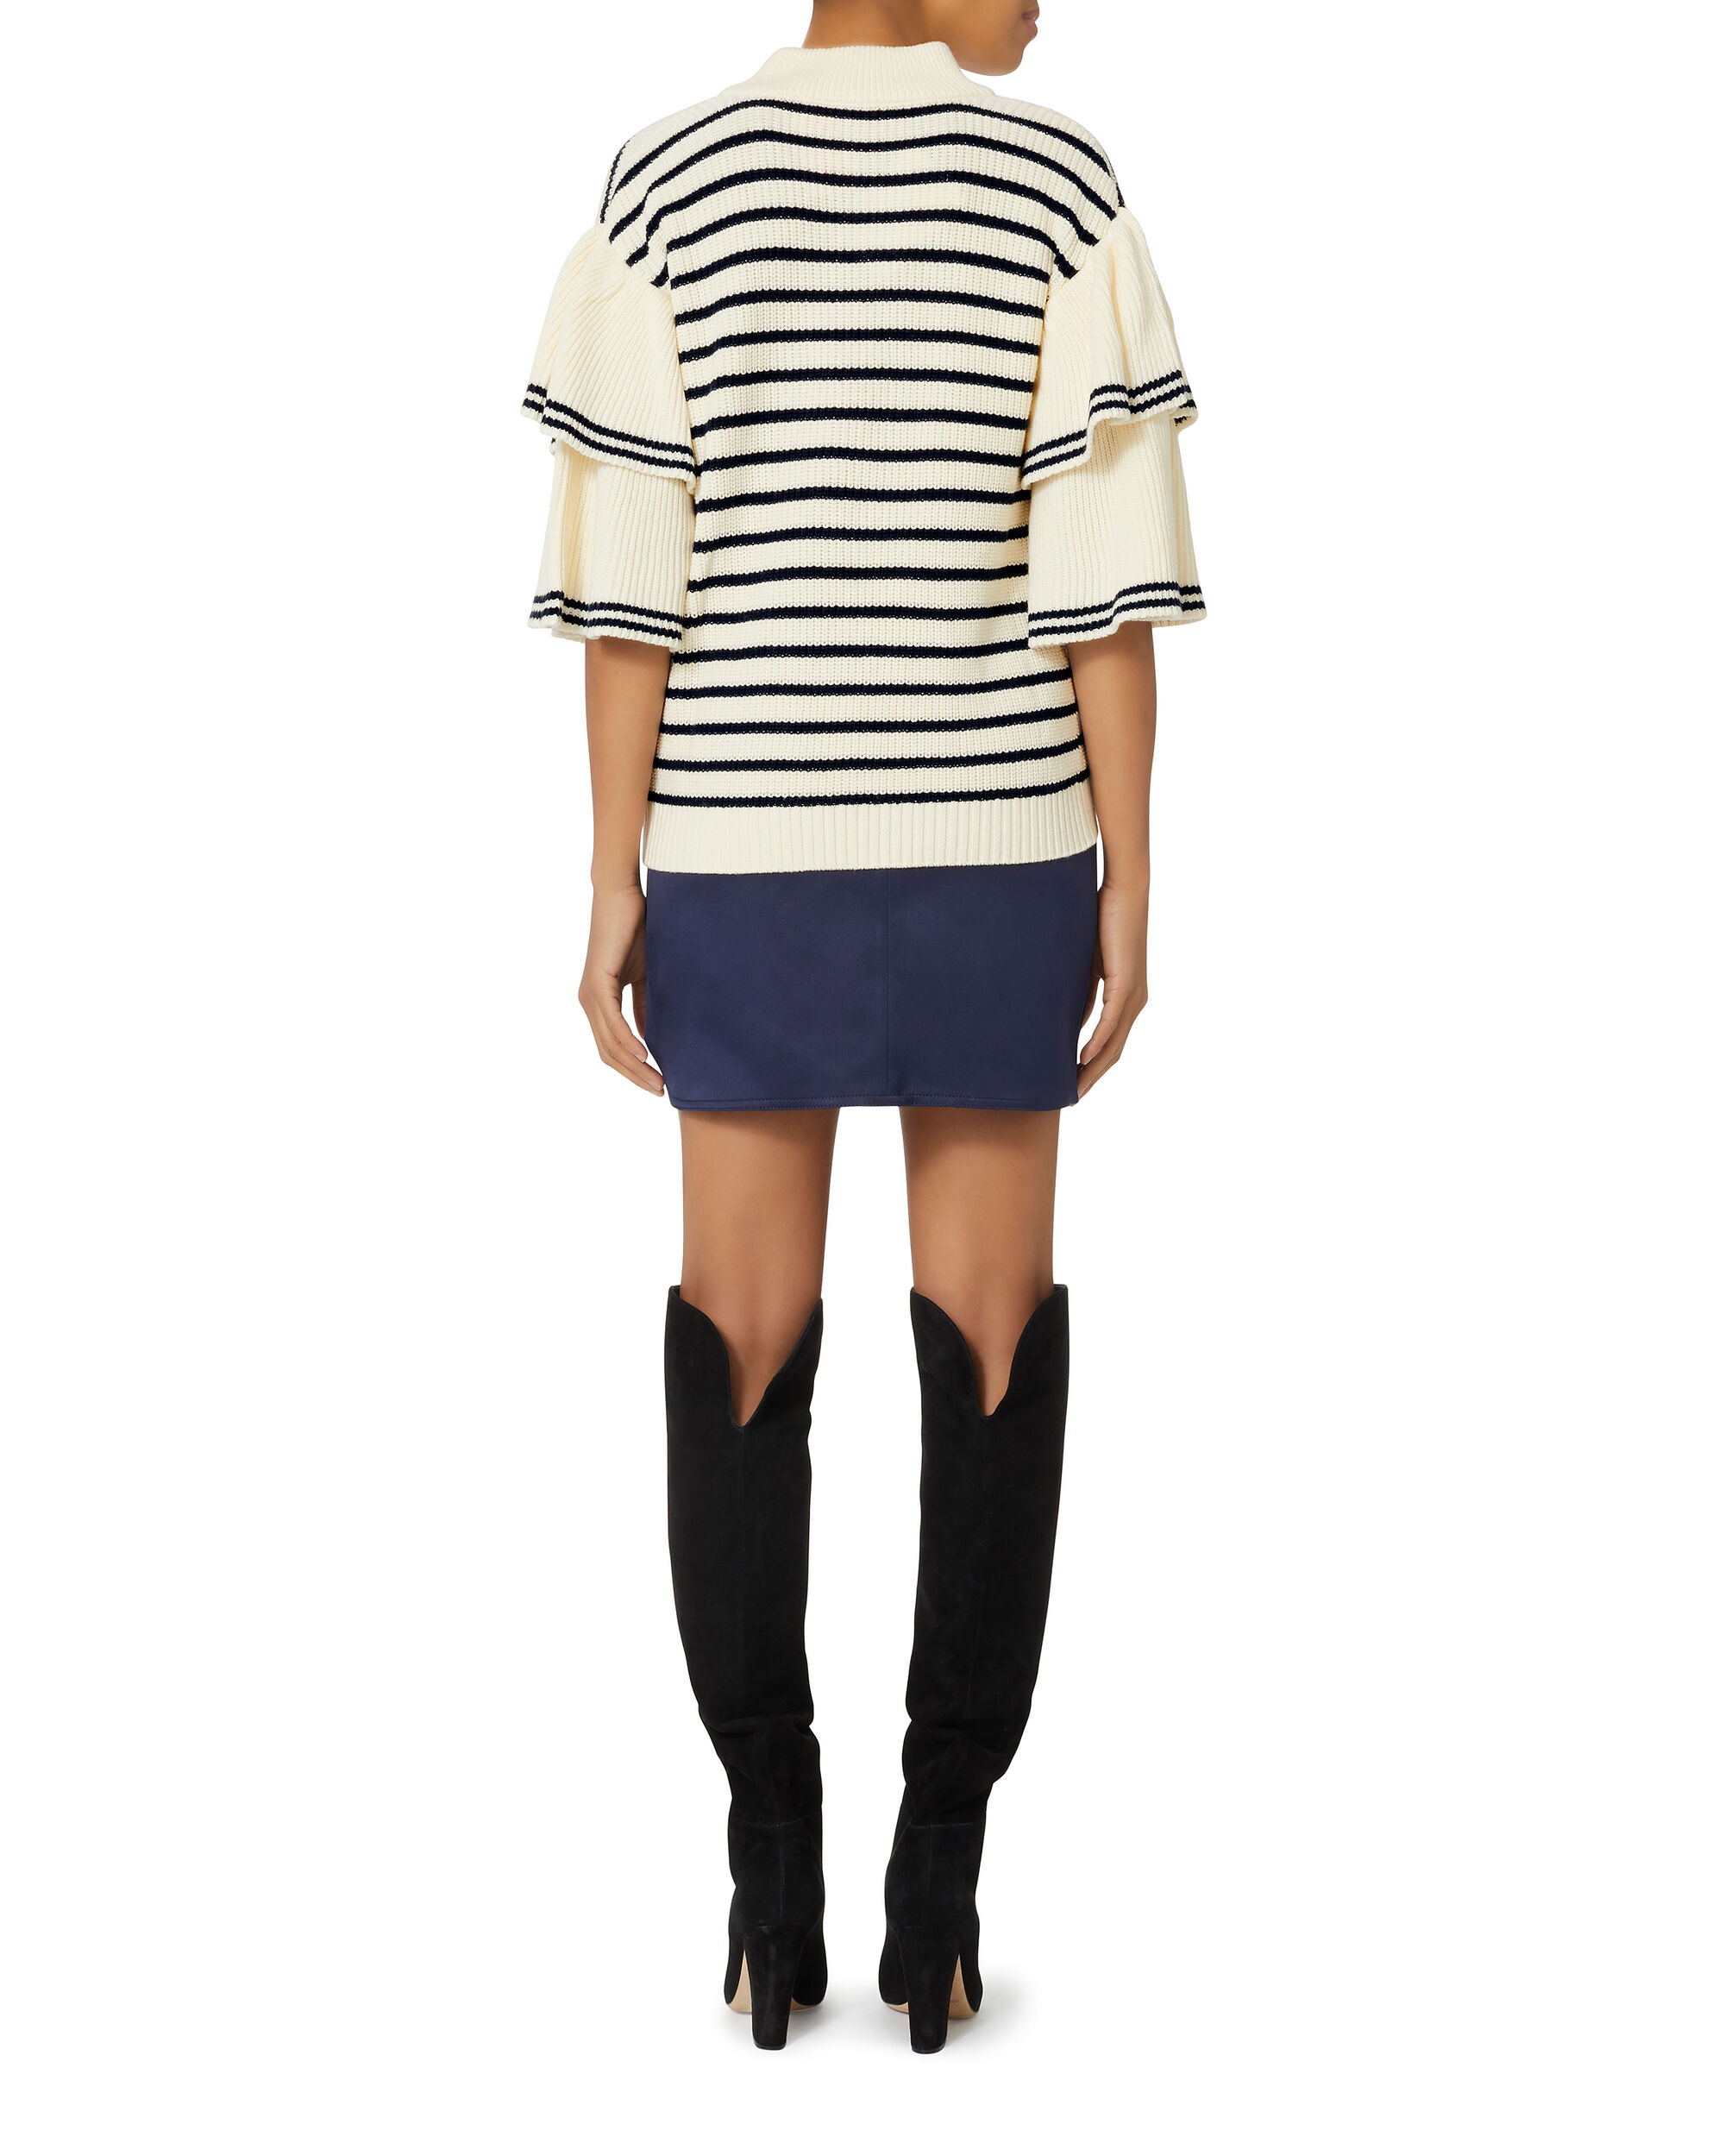 Lace-Up Frilled Striped Sweater, IVORY, hi-res